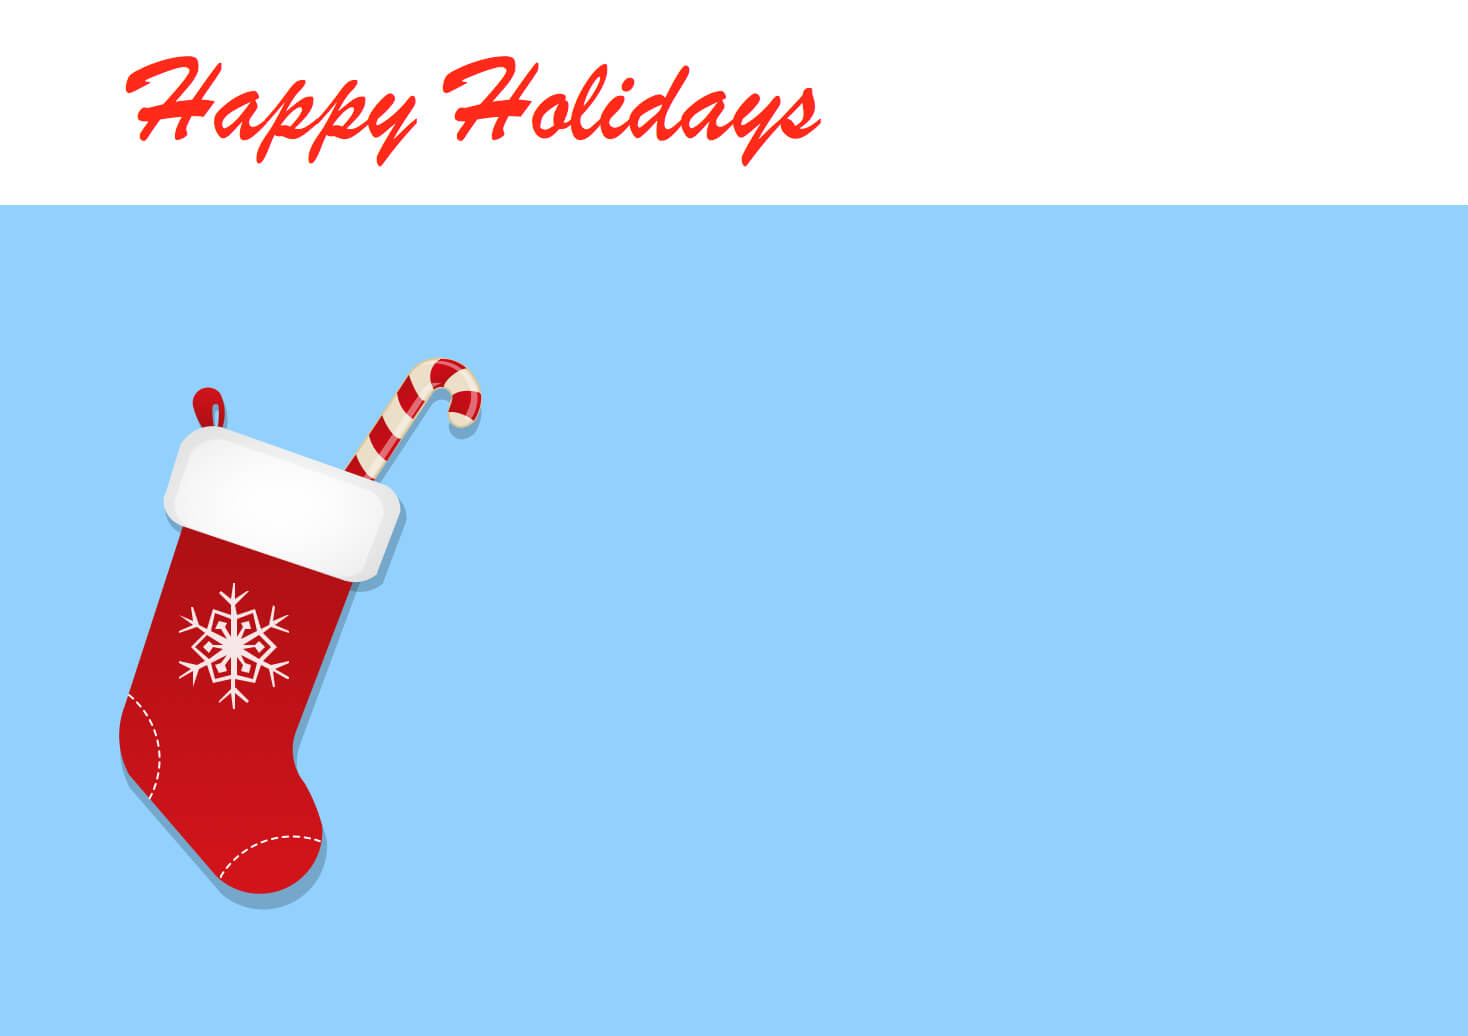 Holiday Greeting Templates - Magdalene-Project for Holiday Card Email Template